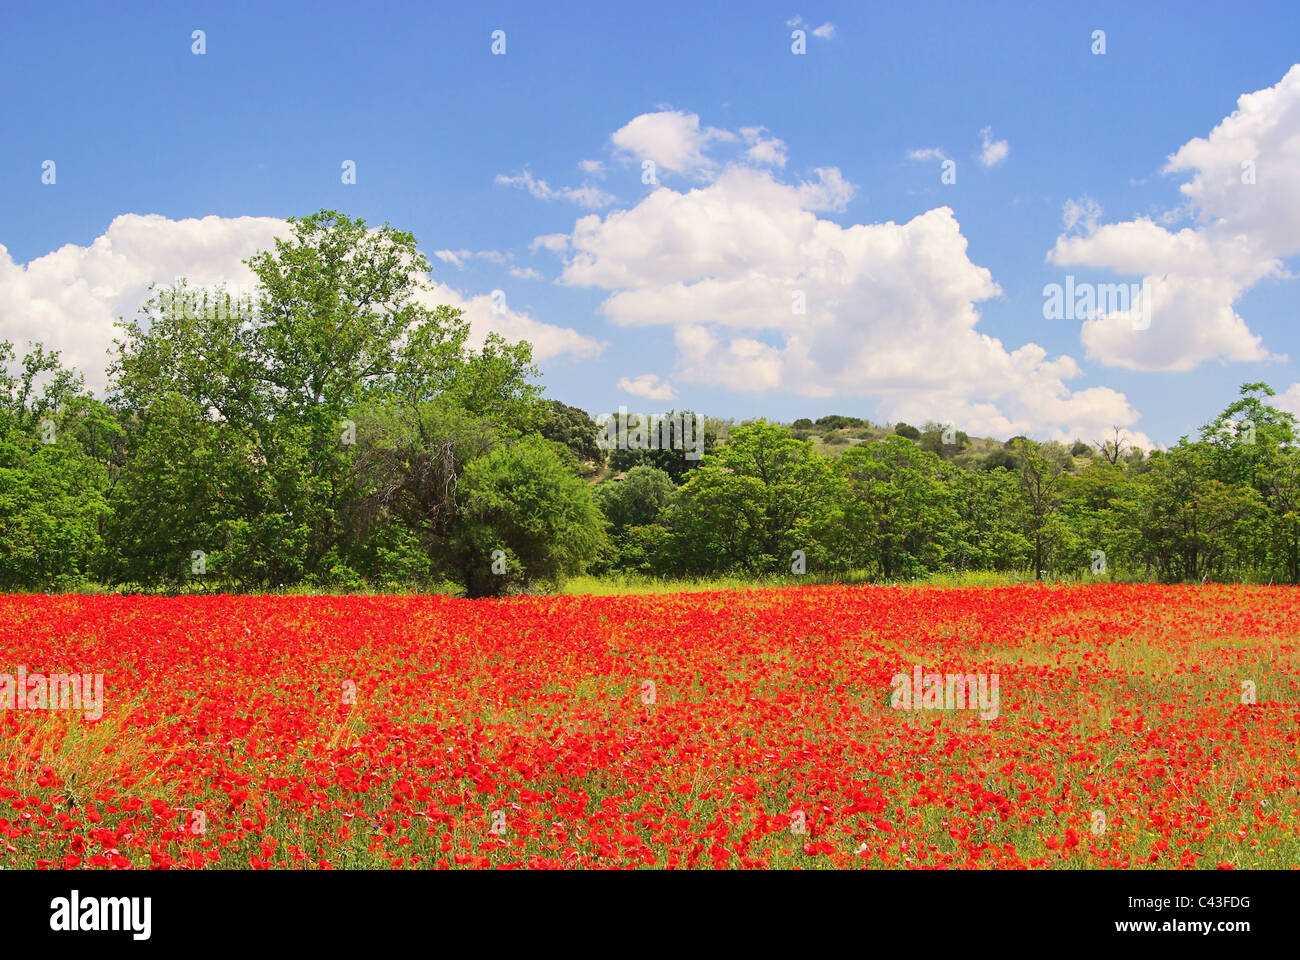 Klatschmohn im Feld - corn poppy in field 08 - Stock Image